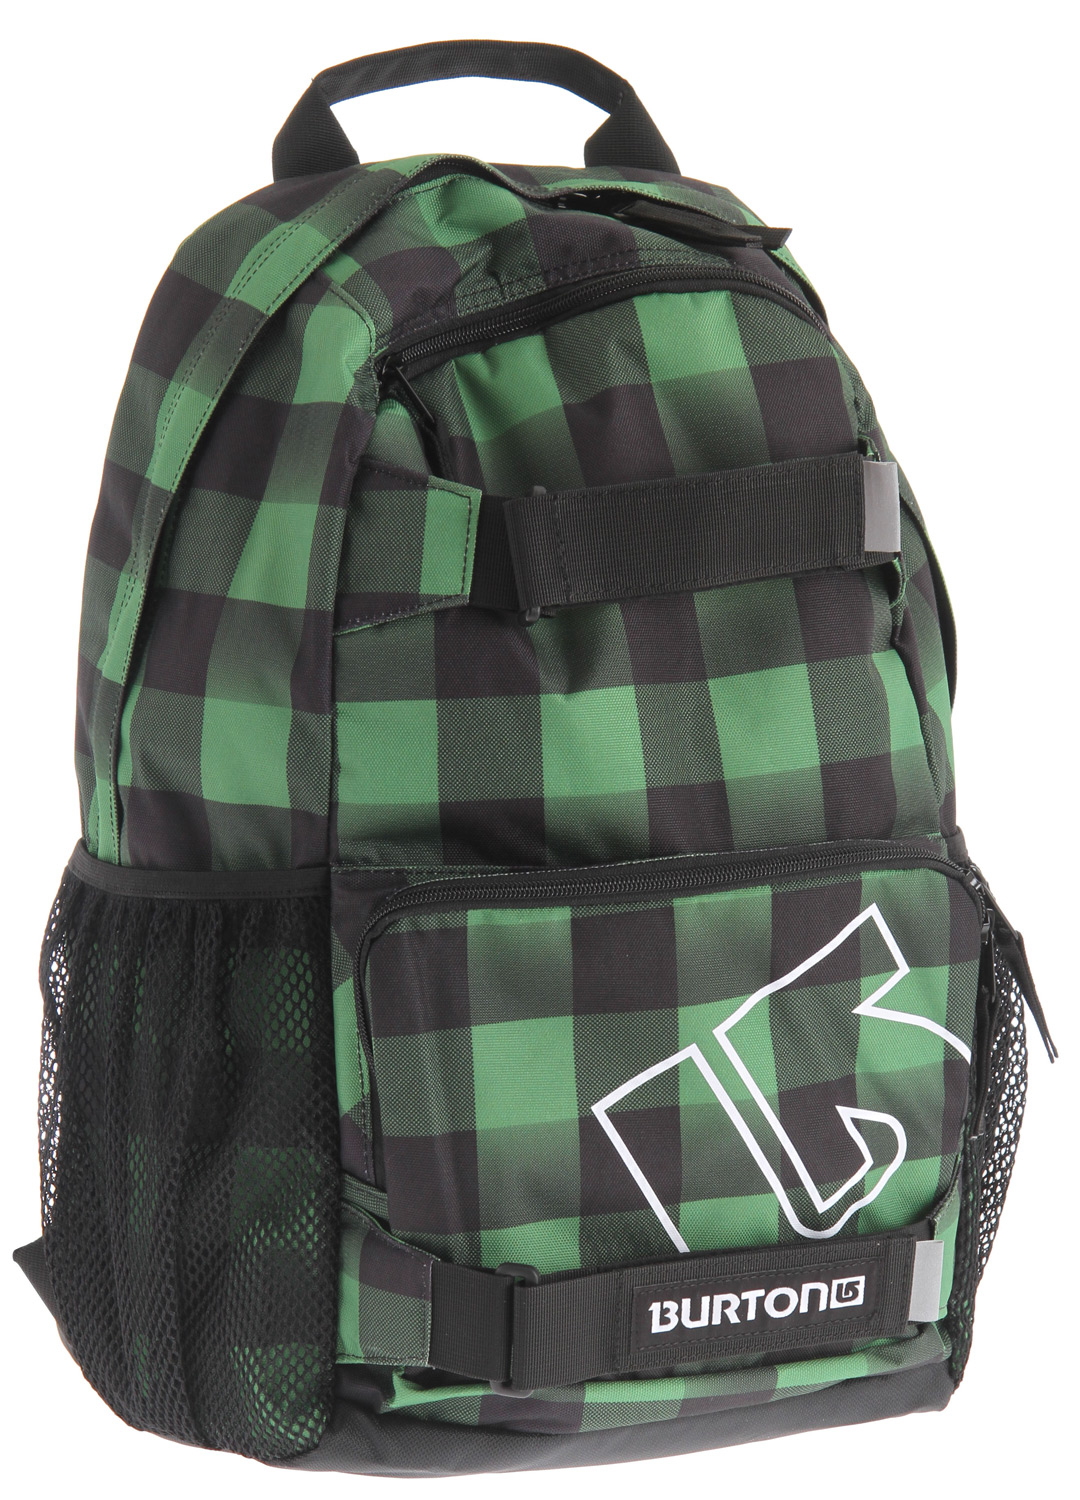 Snowboard Simple skate pack with added bang for your buck.Key Features of the Burton Treble Yell Backpack: Volume: 21L Weight: 1.5 lbs./0.7kg Dimensions: 18.5x12x7 in/47x31x17 cm Fabrication: 300D Polyester Dobby/600D Polyester Cush Ergonomic Shoulder Harness Vertical Skate Carry Magazine/Laptop Sleeve Mesh Water Bottle Pockets - $24.95